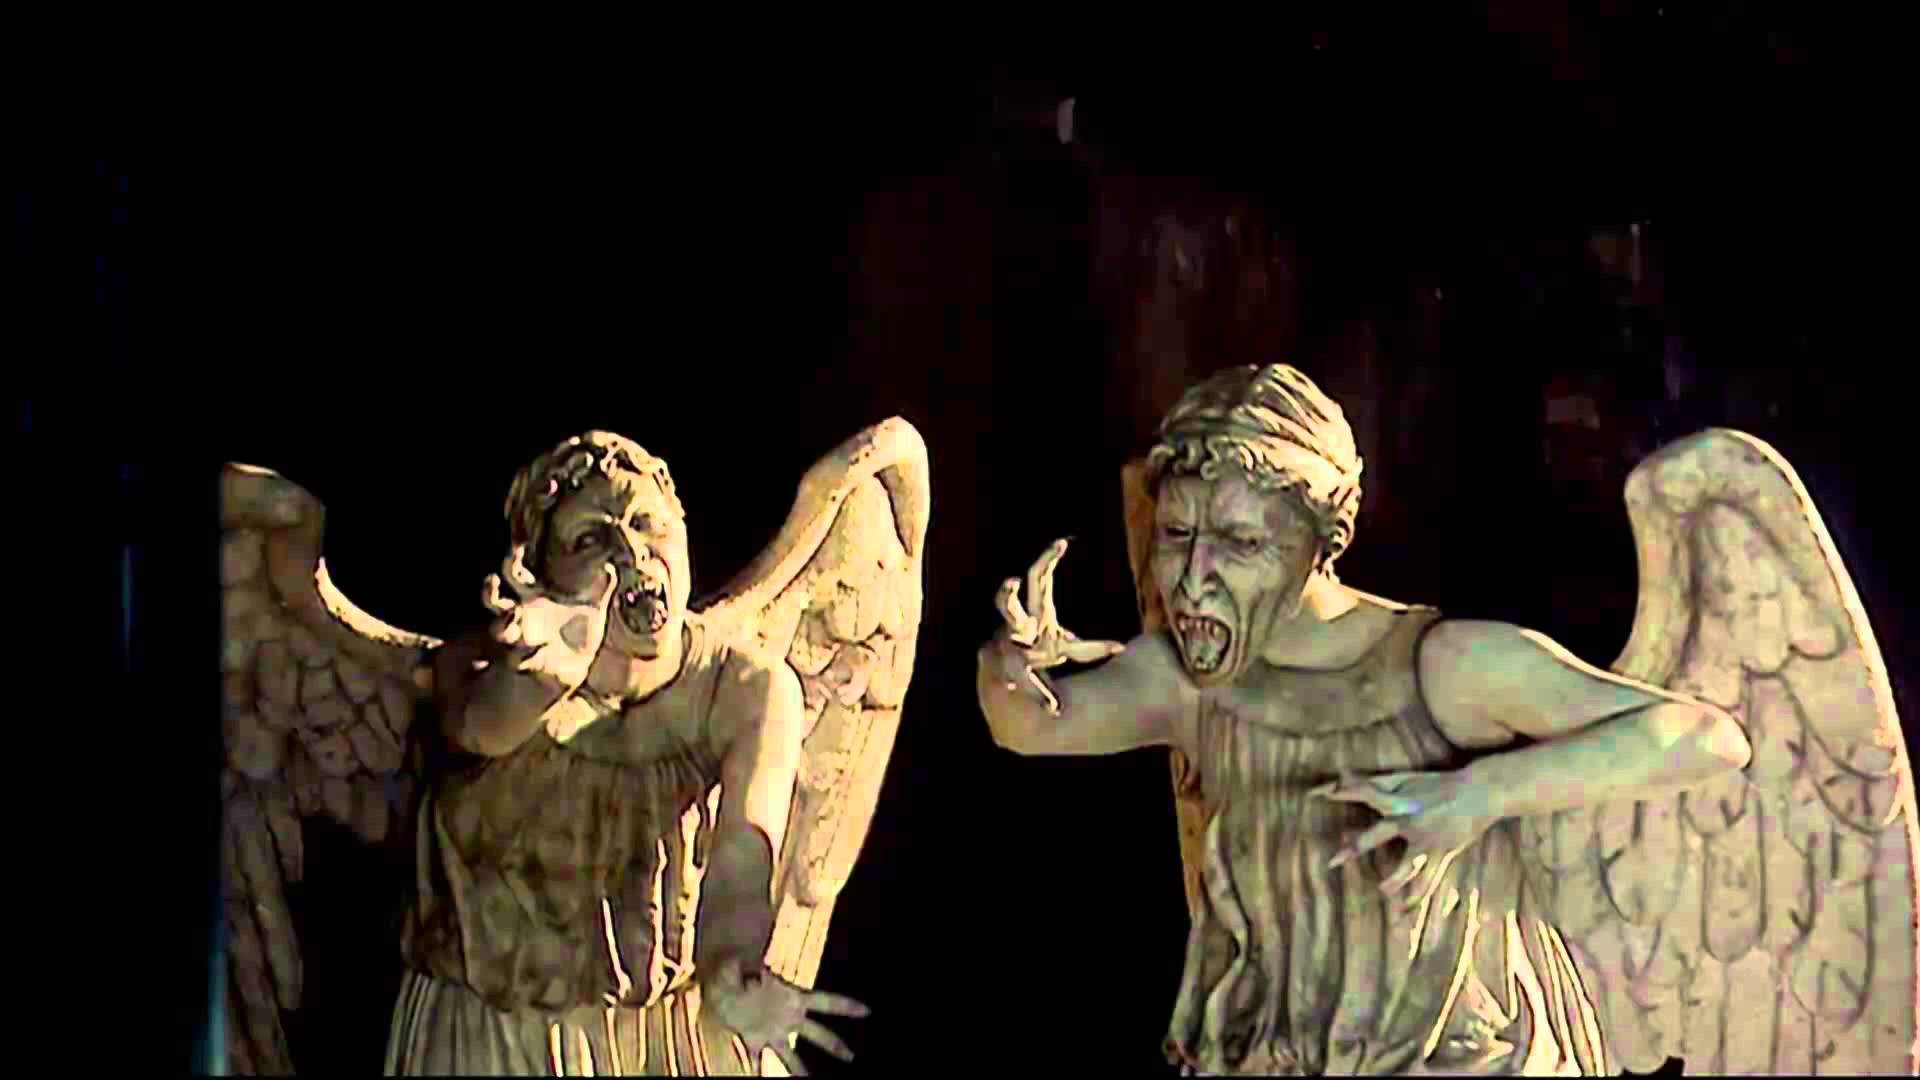 1920x1080 Doctor Who Weeping Angels Screensaver - YouTube